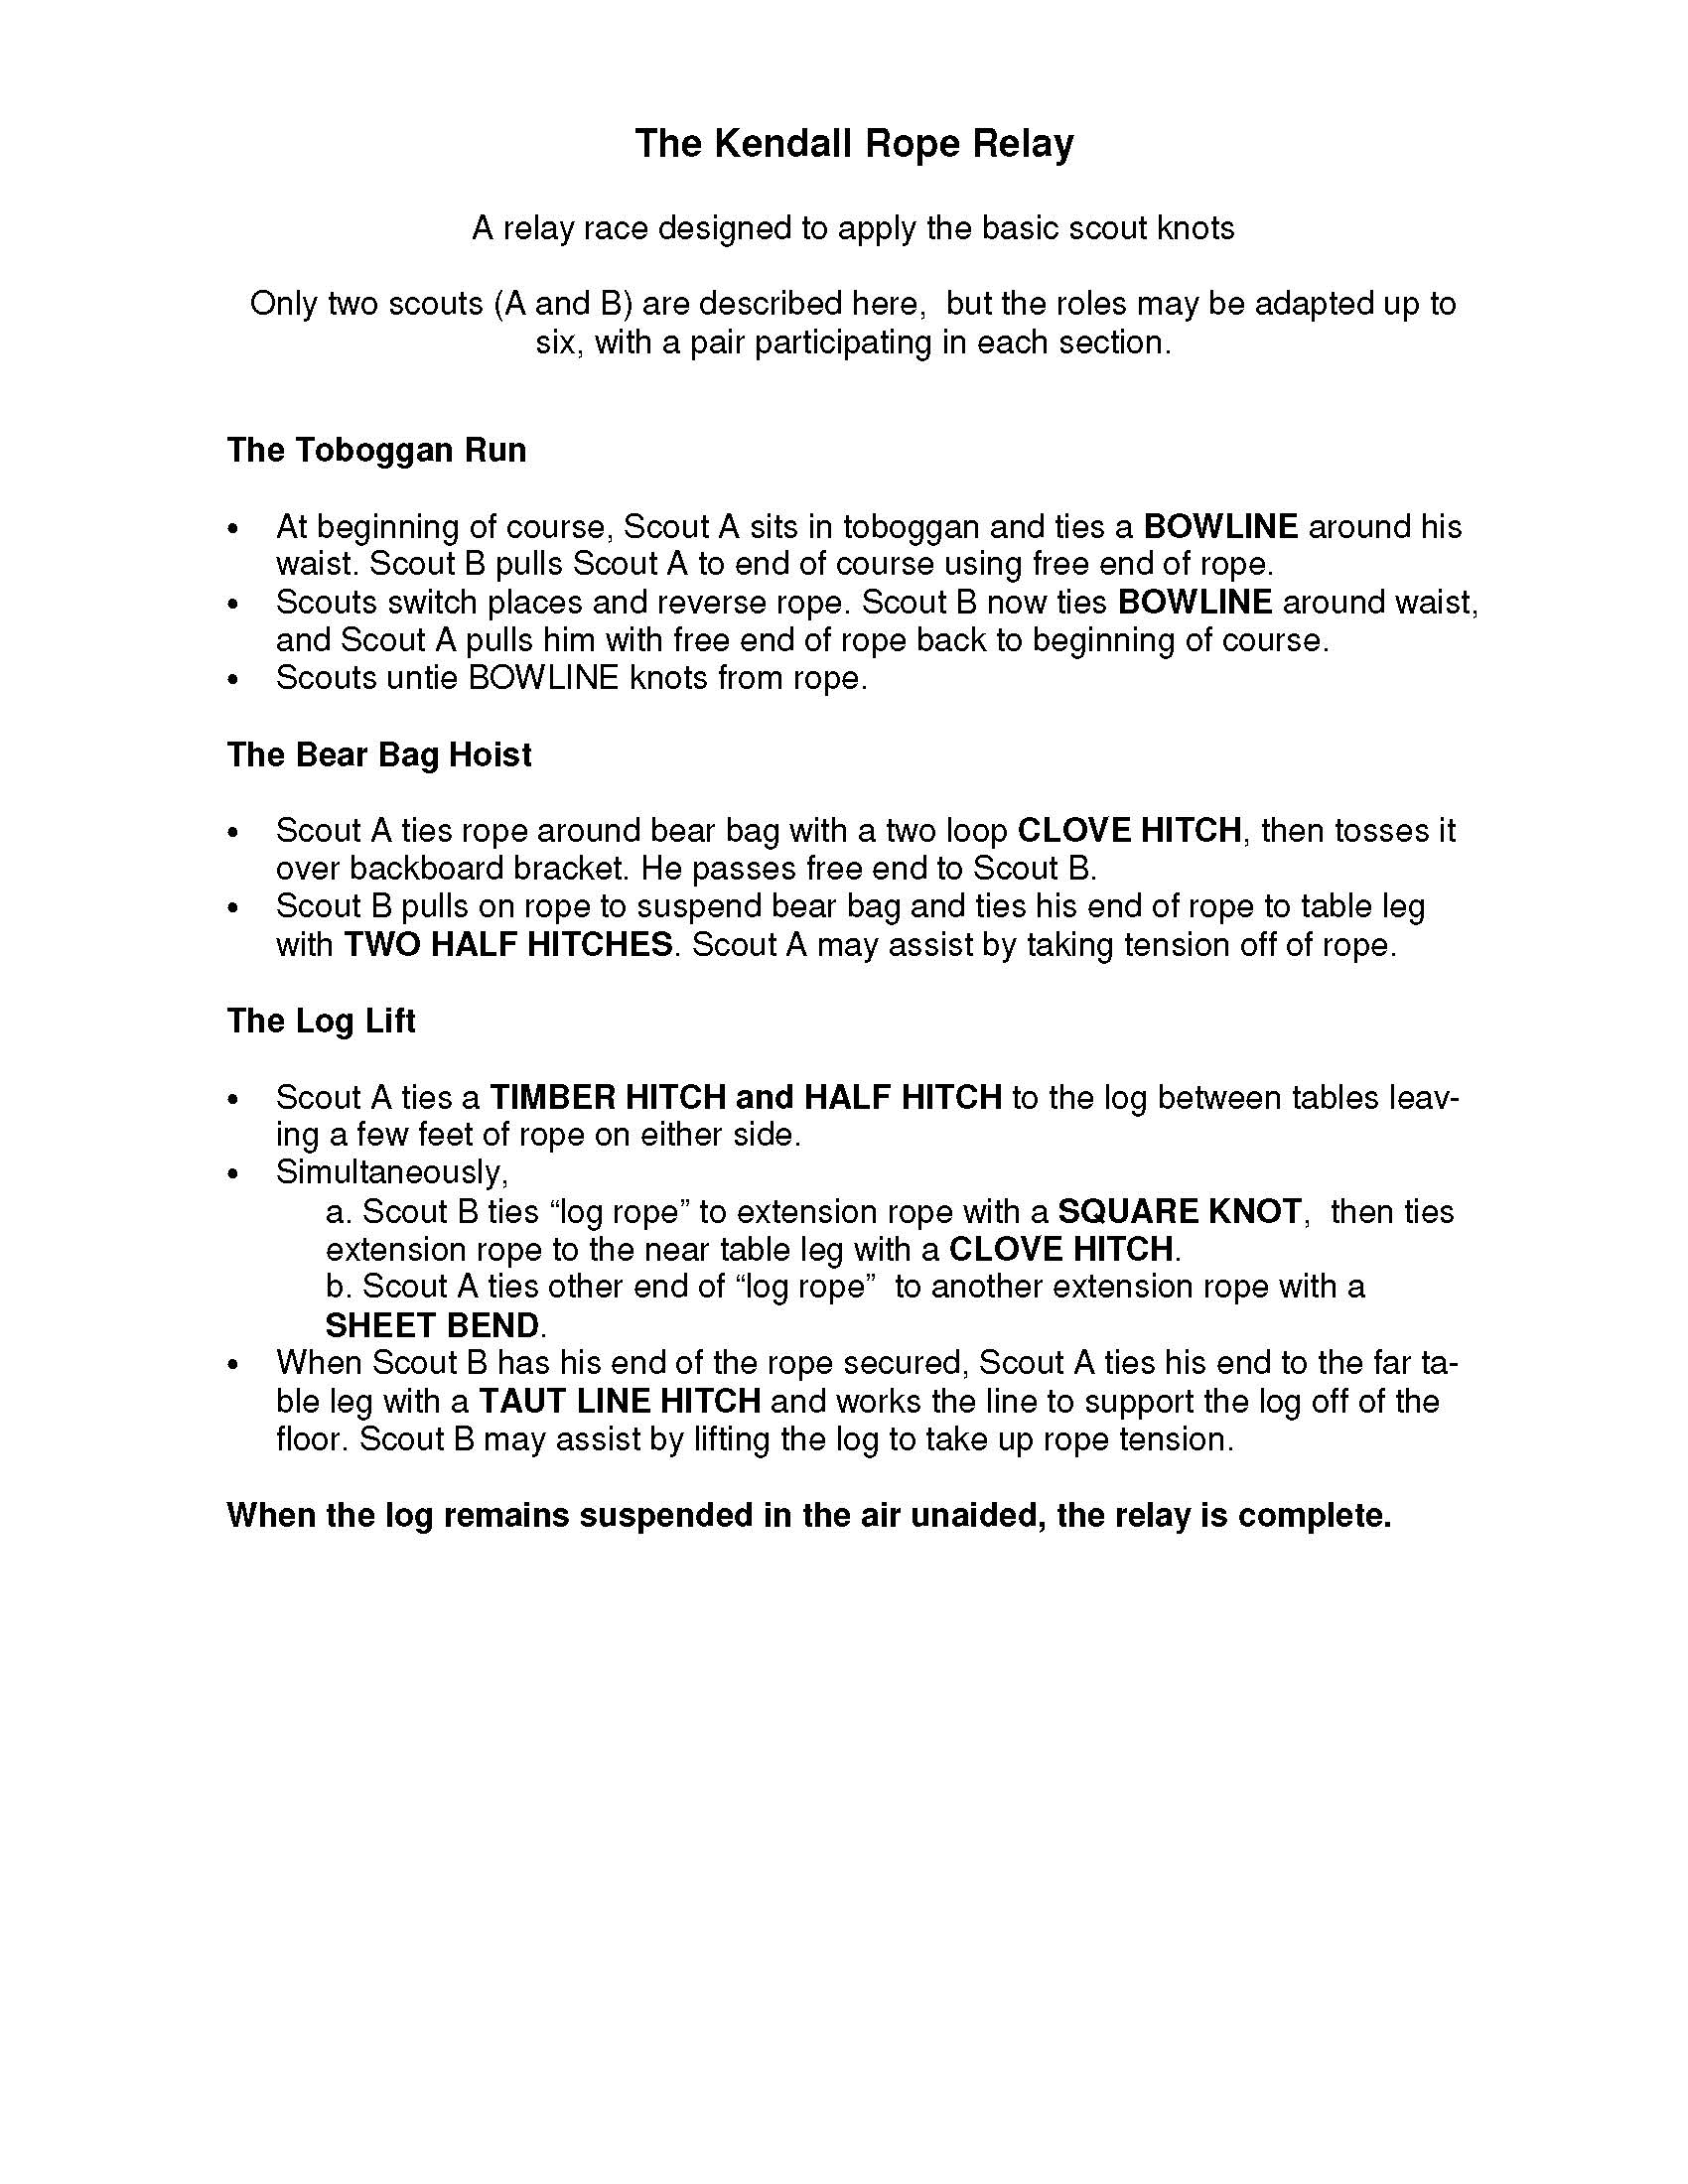 Kendall Rope Relay_Page_1.jpg